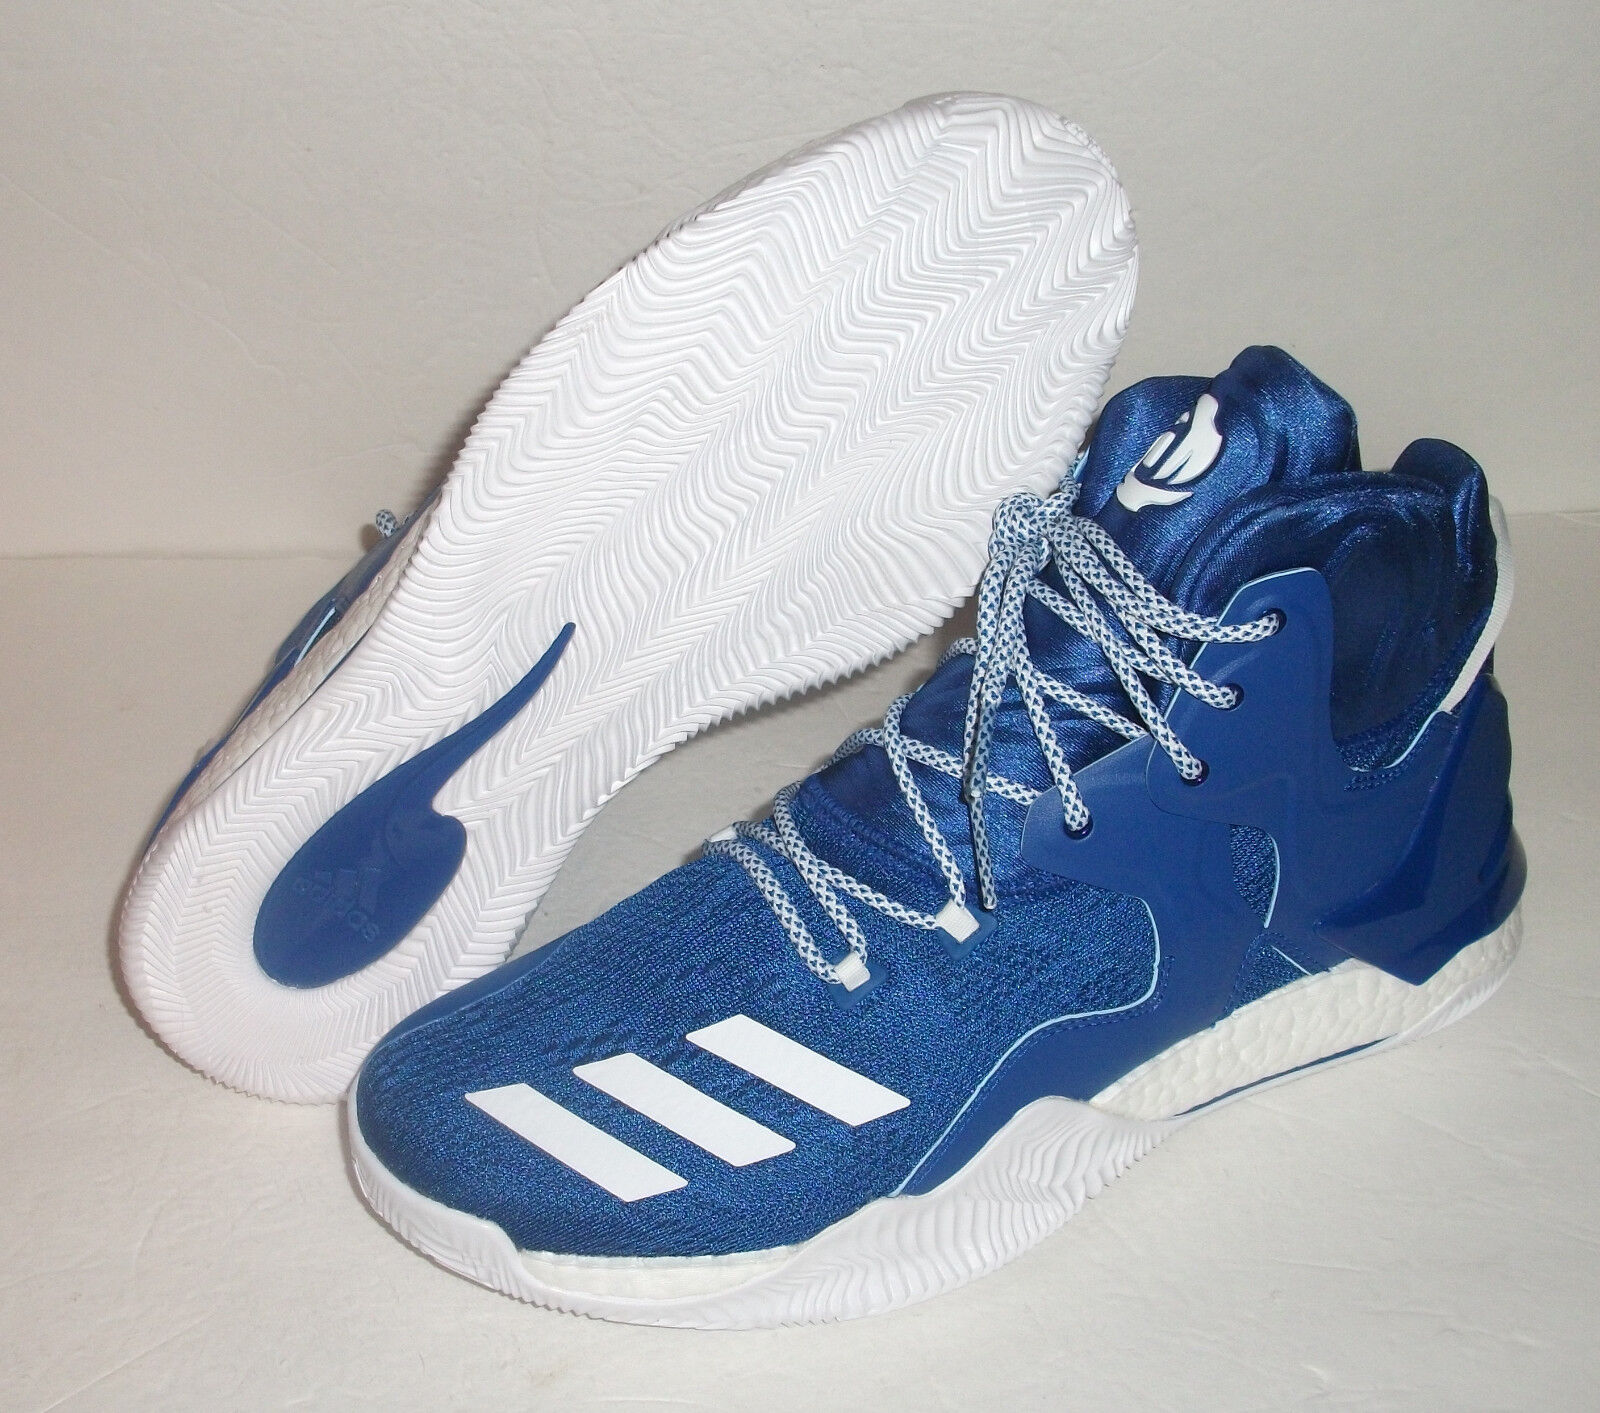 New Adidas D Rose Size 7 Basketball Shoes, Men's Size Rose 13, Blue, Sty#B38922 038c42